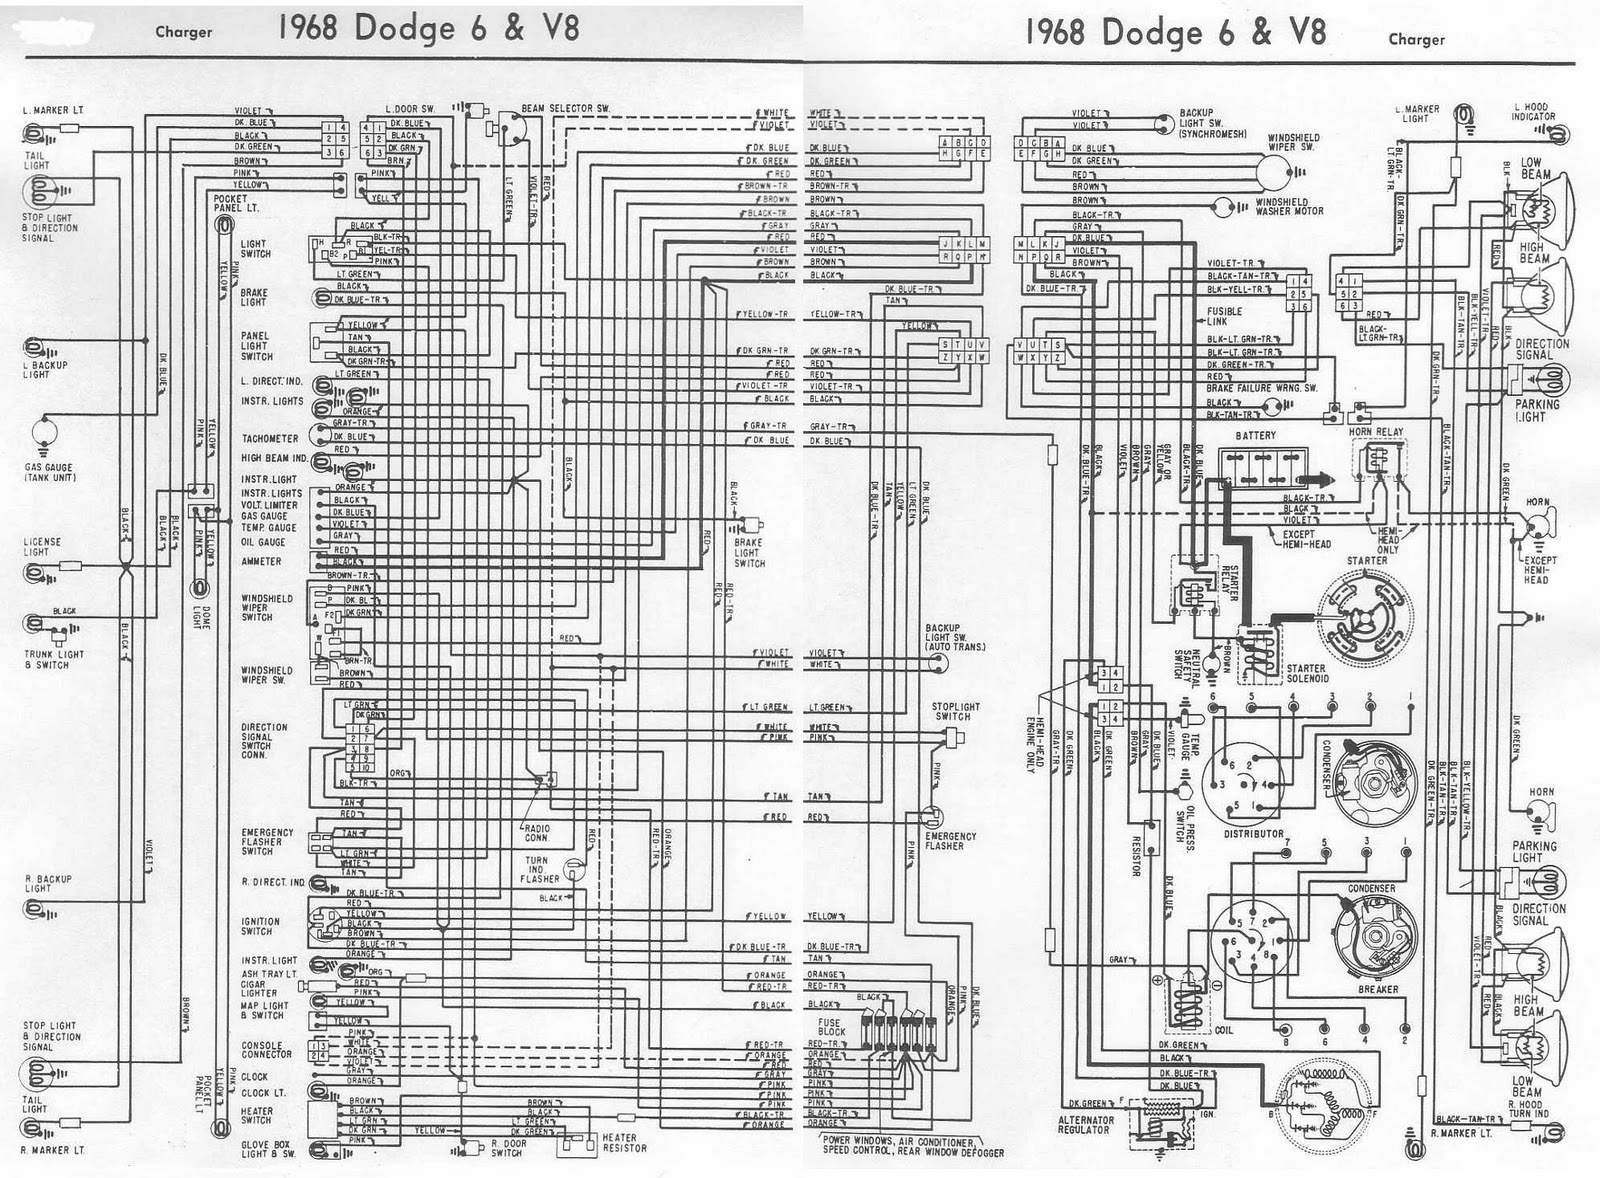 Dodge+Charger+1968+6+and+V8+Complete+Electrical+Wiring+Diagram dodge charger wiring diagram dodge wiring diagrams instruction 1970 dodge coronet wiring diagram at bakdesigns.co